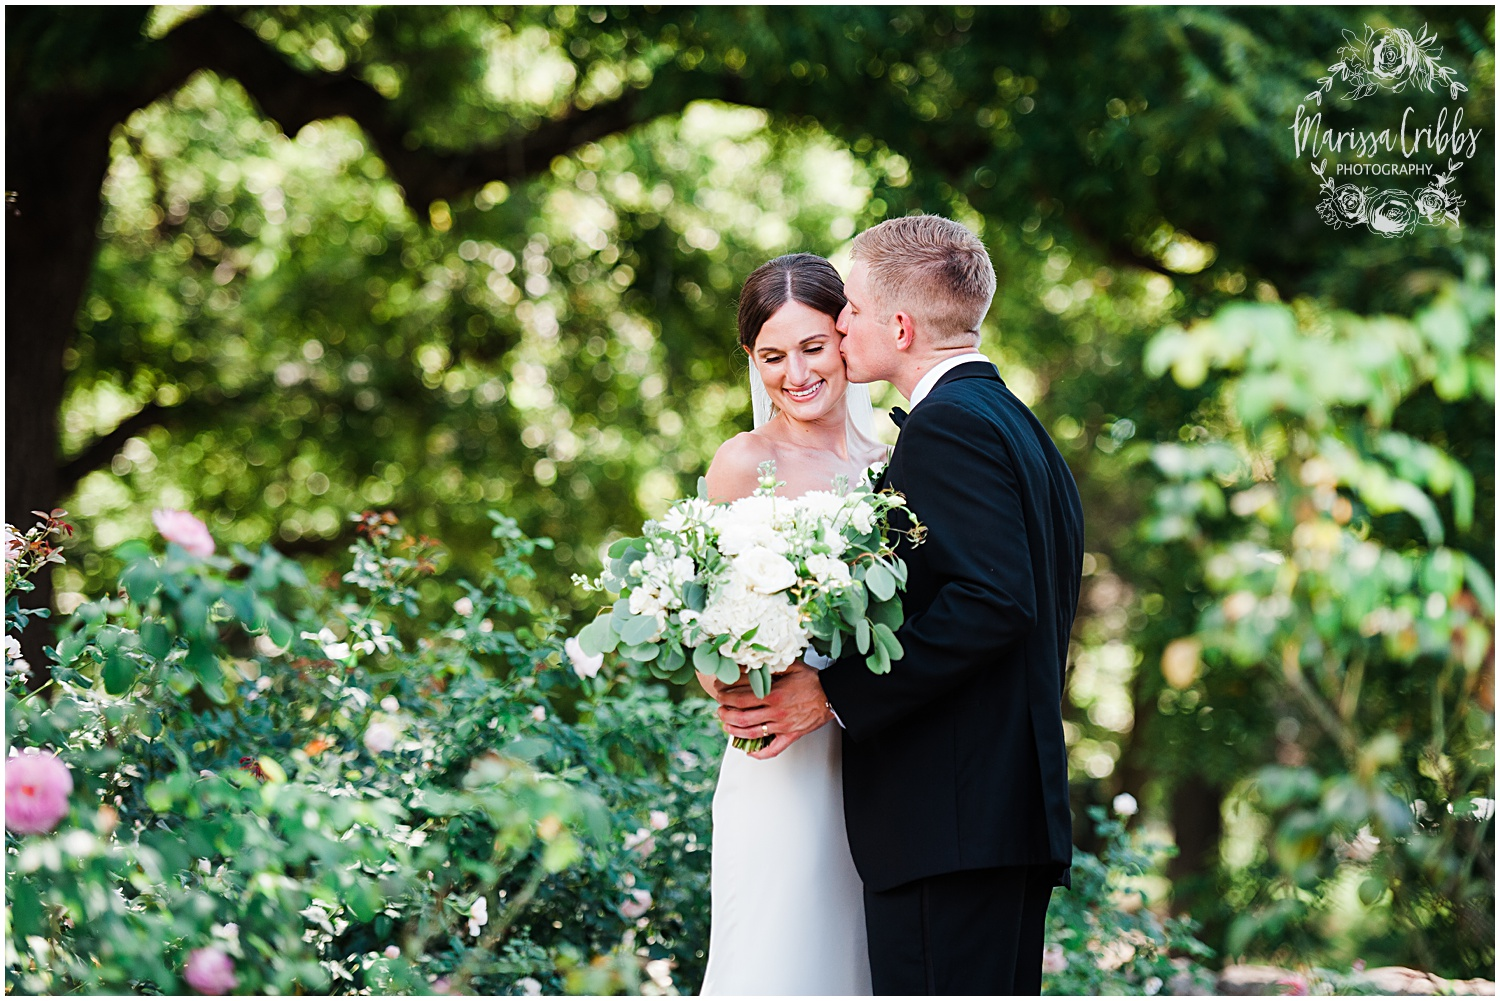 JOANNE & GEORGE MARRIED BLOG | MARISSA CRIBBS PHOTOGRAPHY | THE ABBOTT | KANSAS CITY WEDDING PHOTOS_9068.jpg